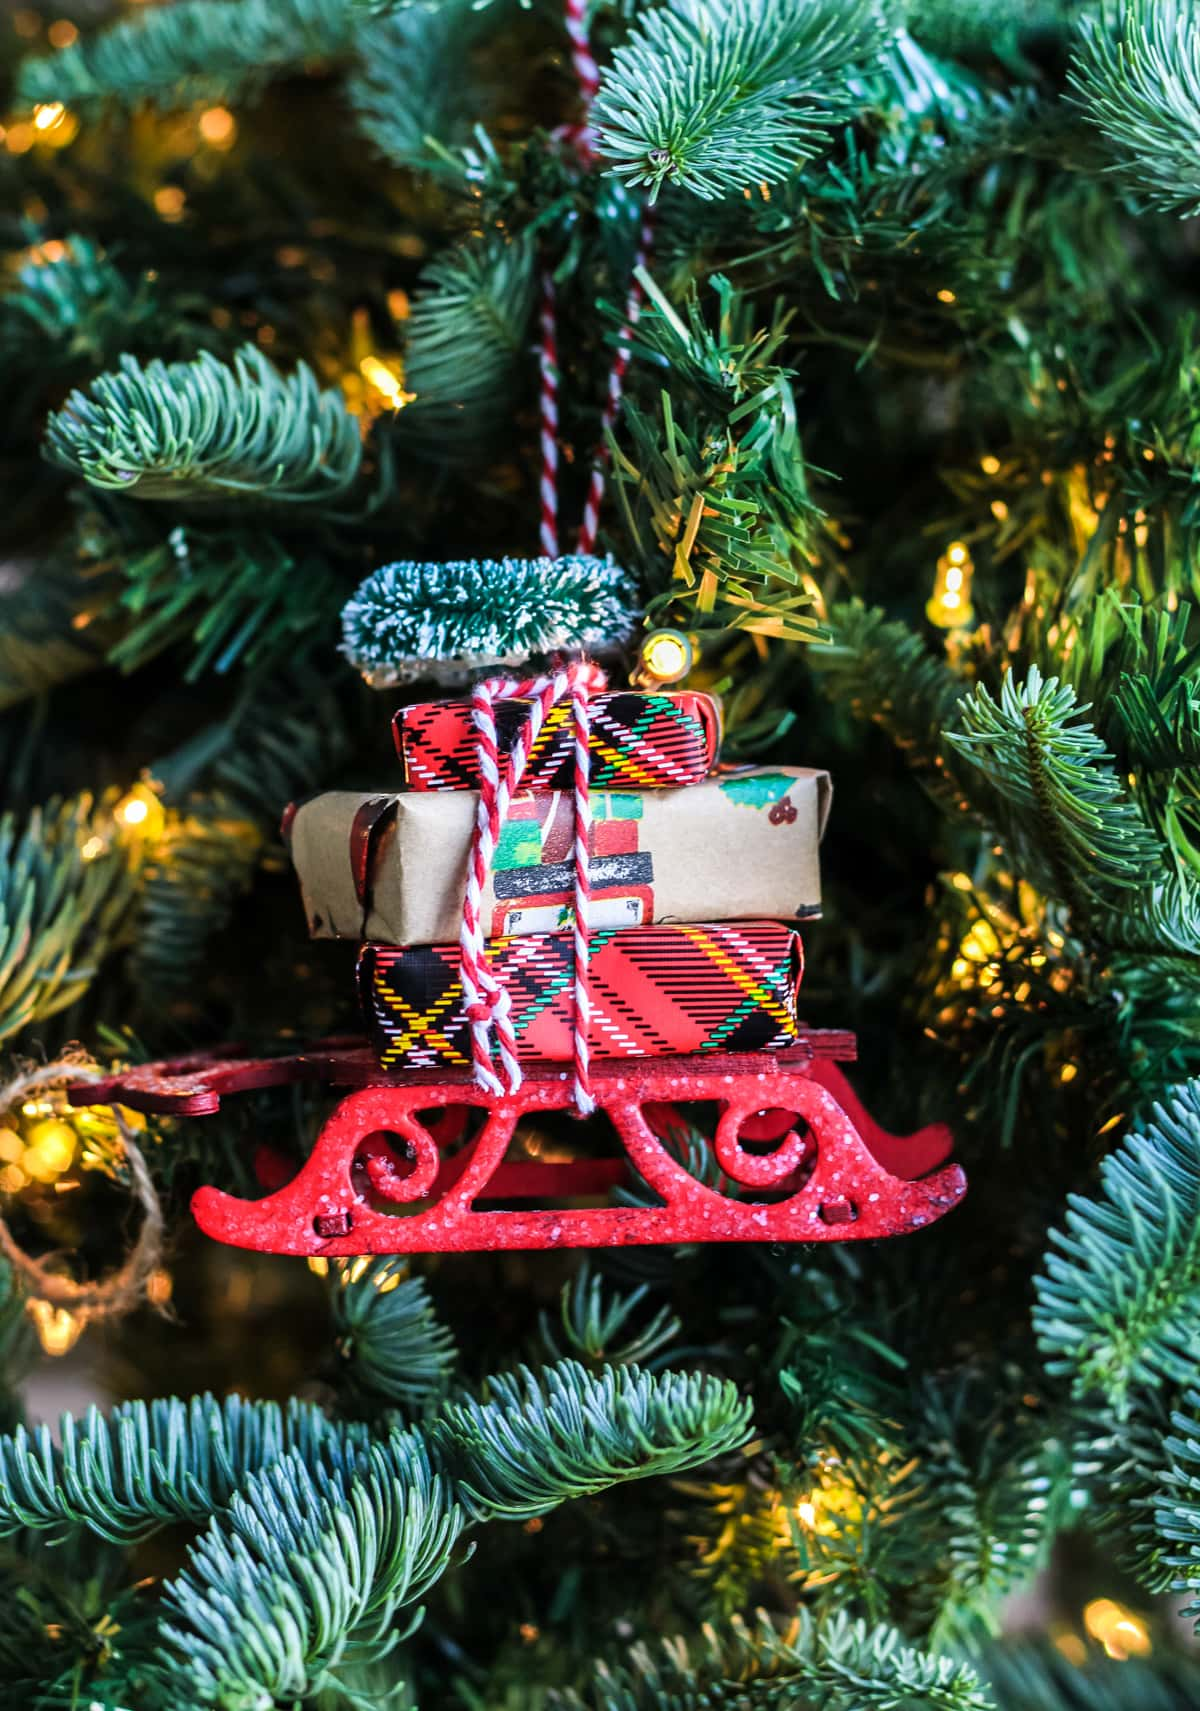 A Christmas Sleigh Ornament hanging on a tree